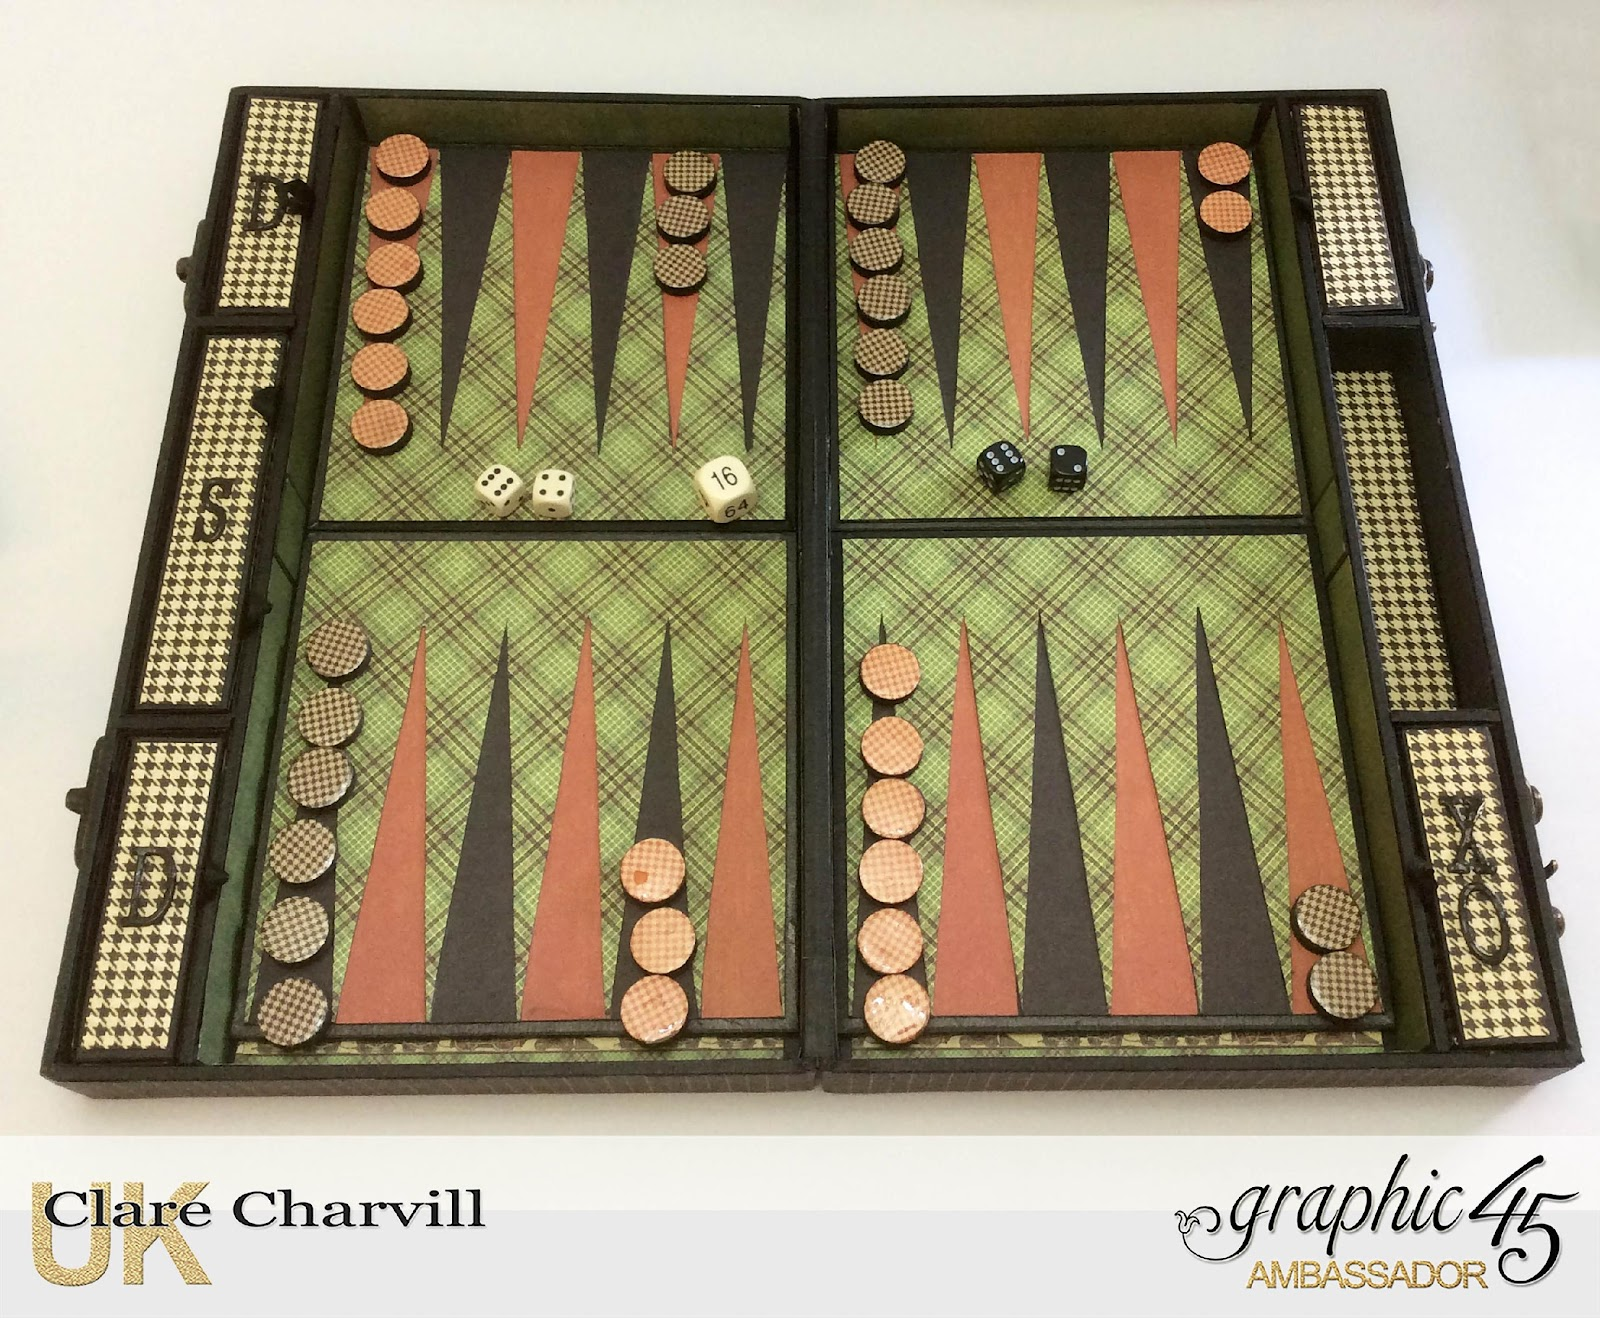 /Users/clare/Pictures/Photos Library.photoslibrary/Masters/2017/07/10/20170710-063017/MDCOG Backgammon 2 Clare Charvill Graphic 45.jpg